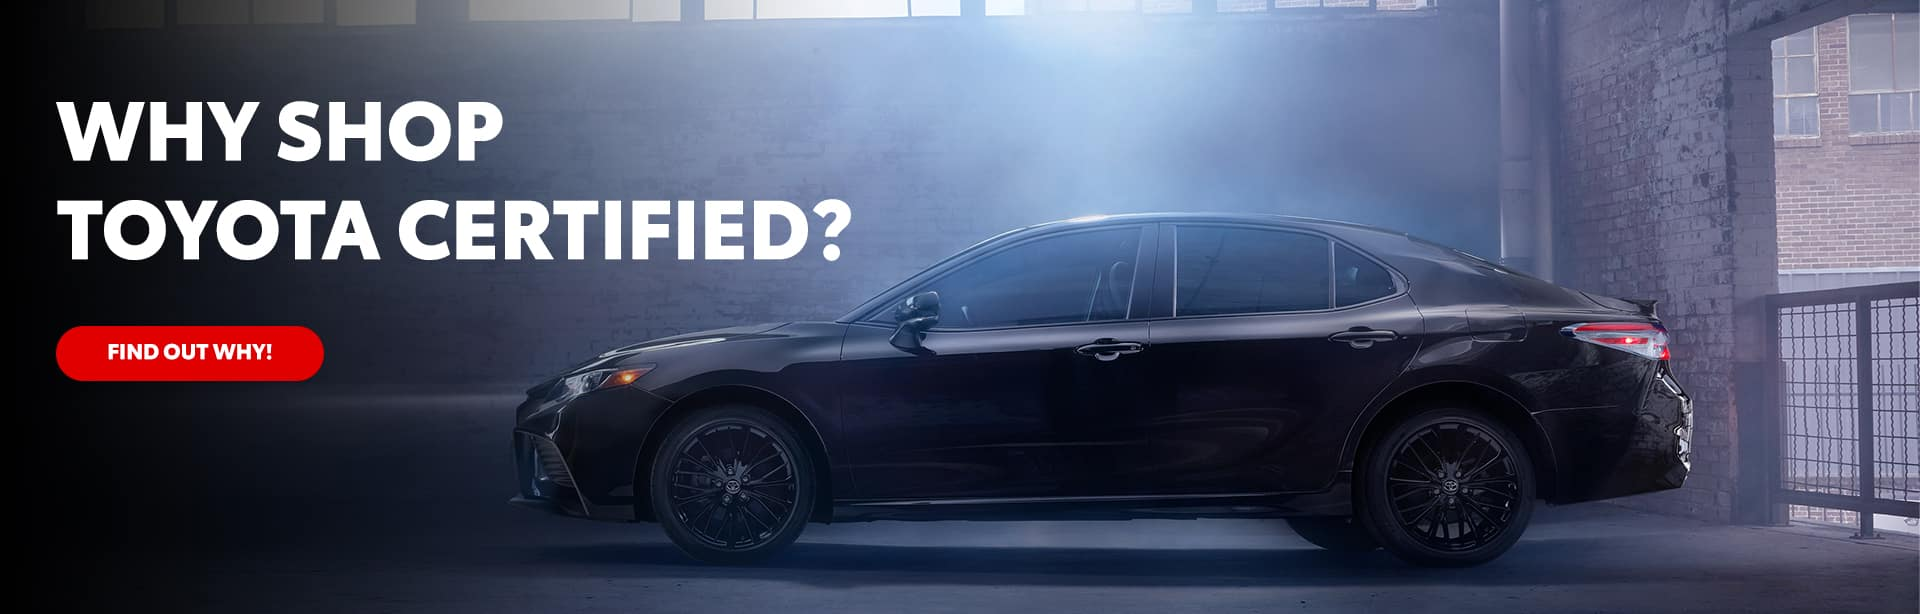 Why Shop Toyota Certified?